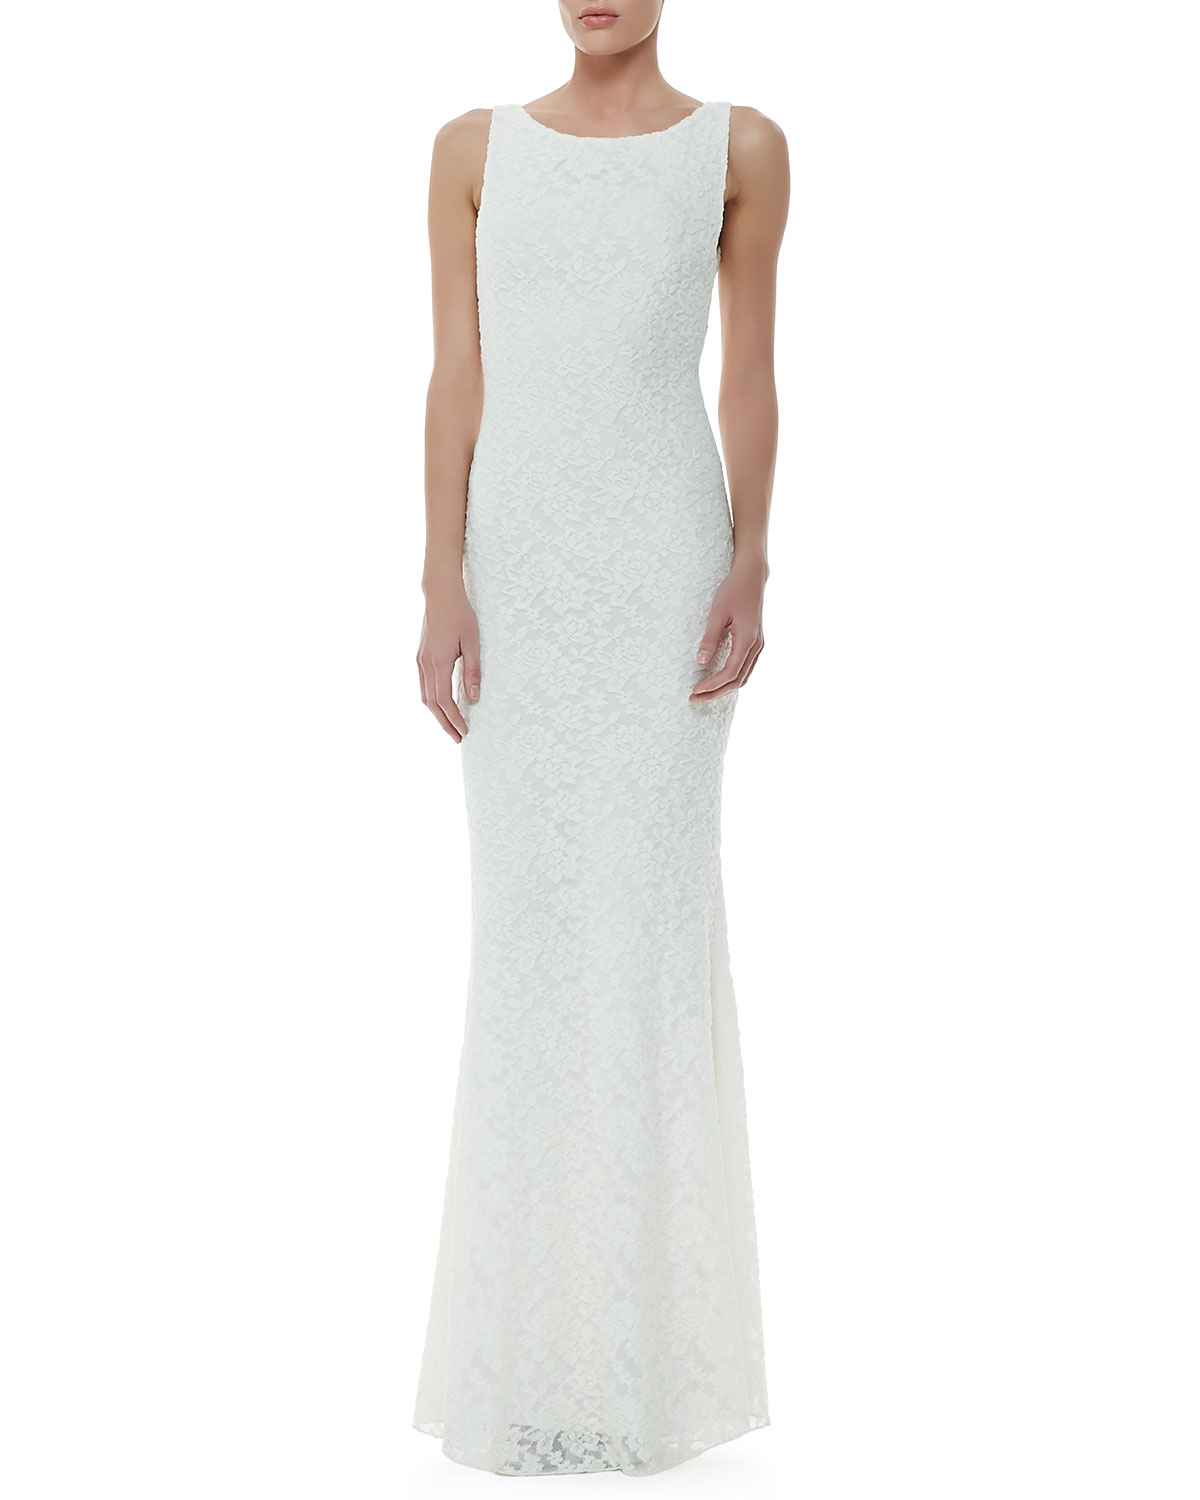 Alice Olivia Sachi Open Back Lace Gown In White Lyst